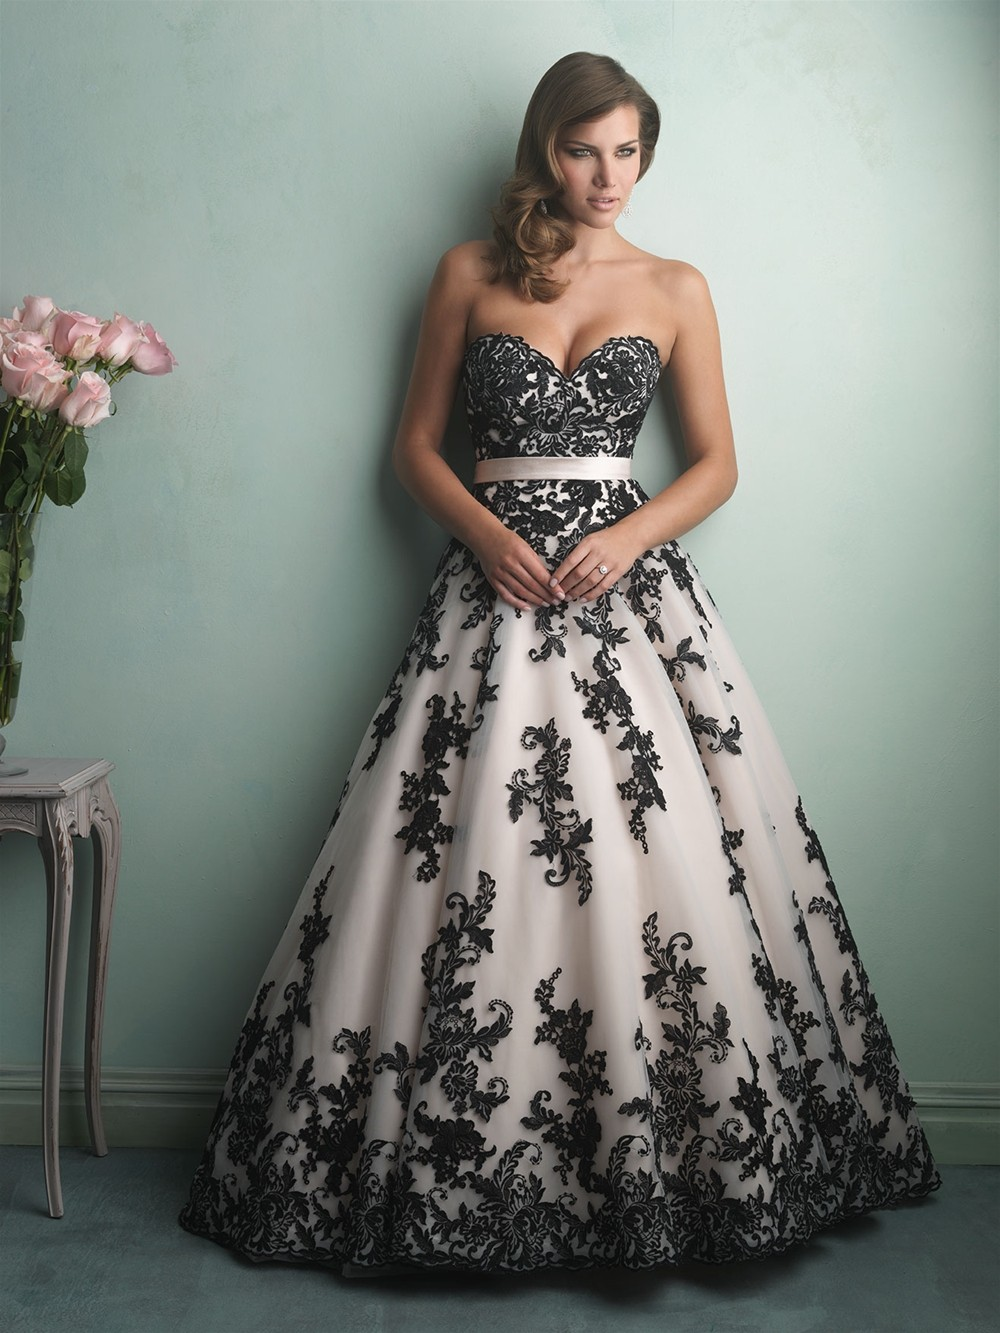 Sweetheart neckline lace black and white wedding dress